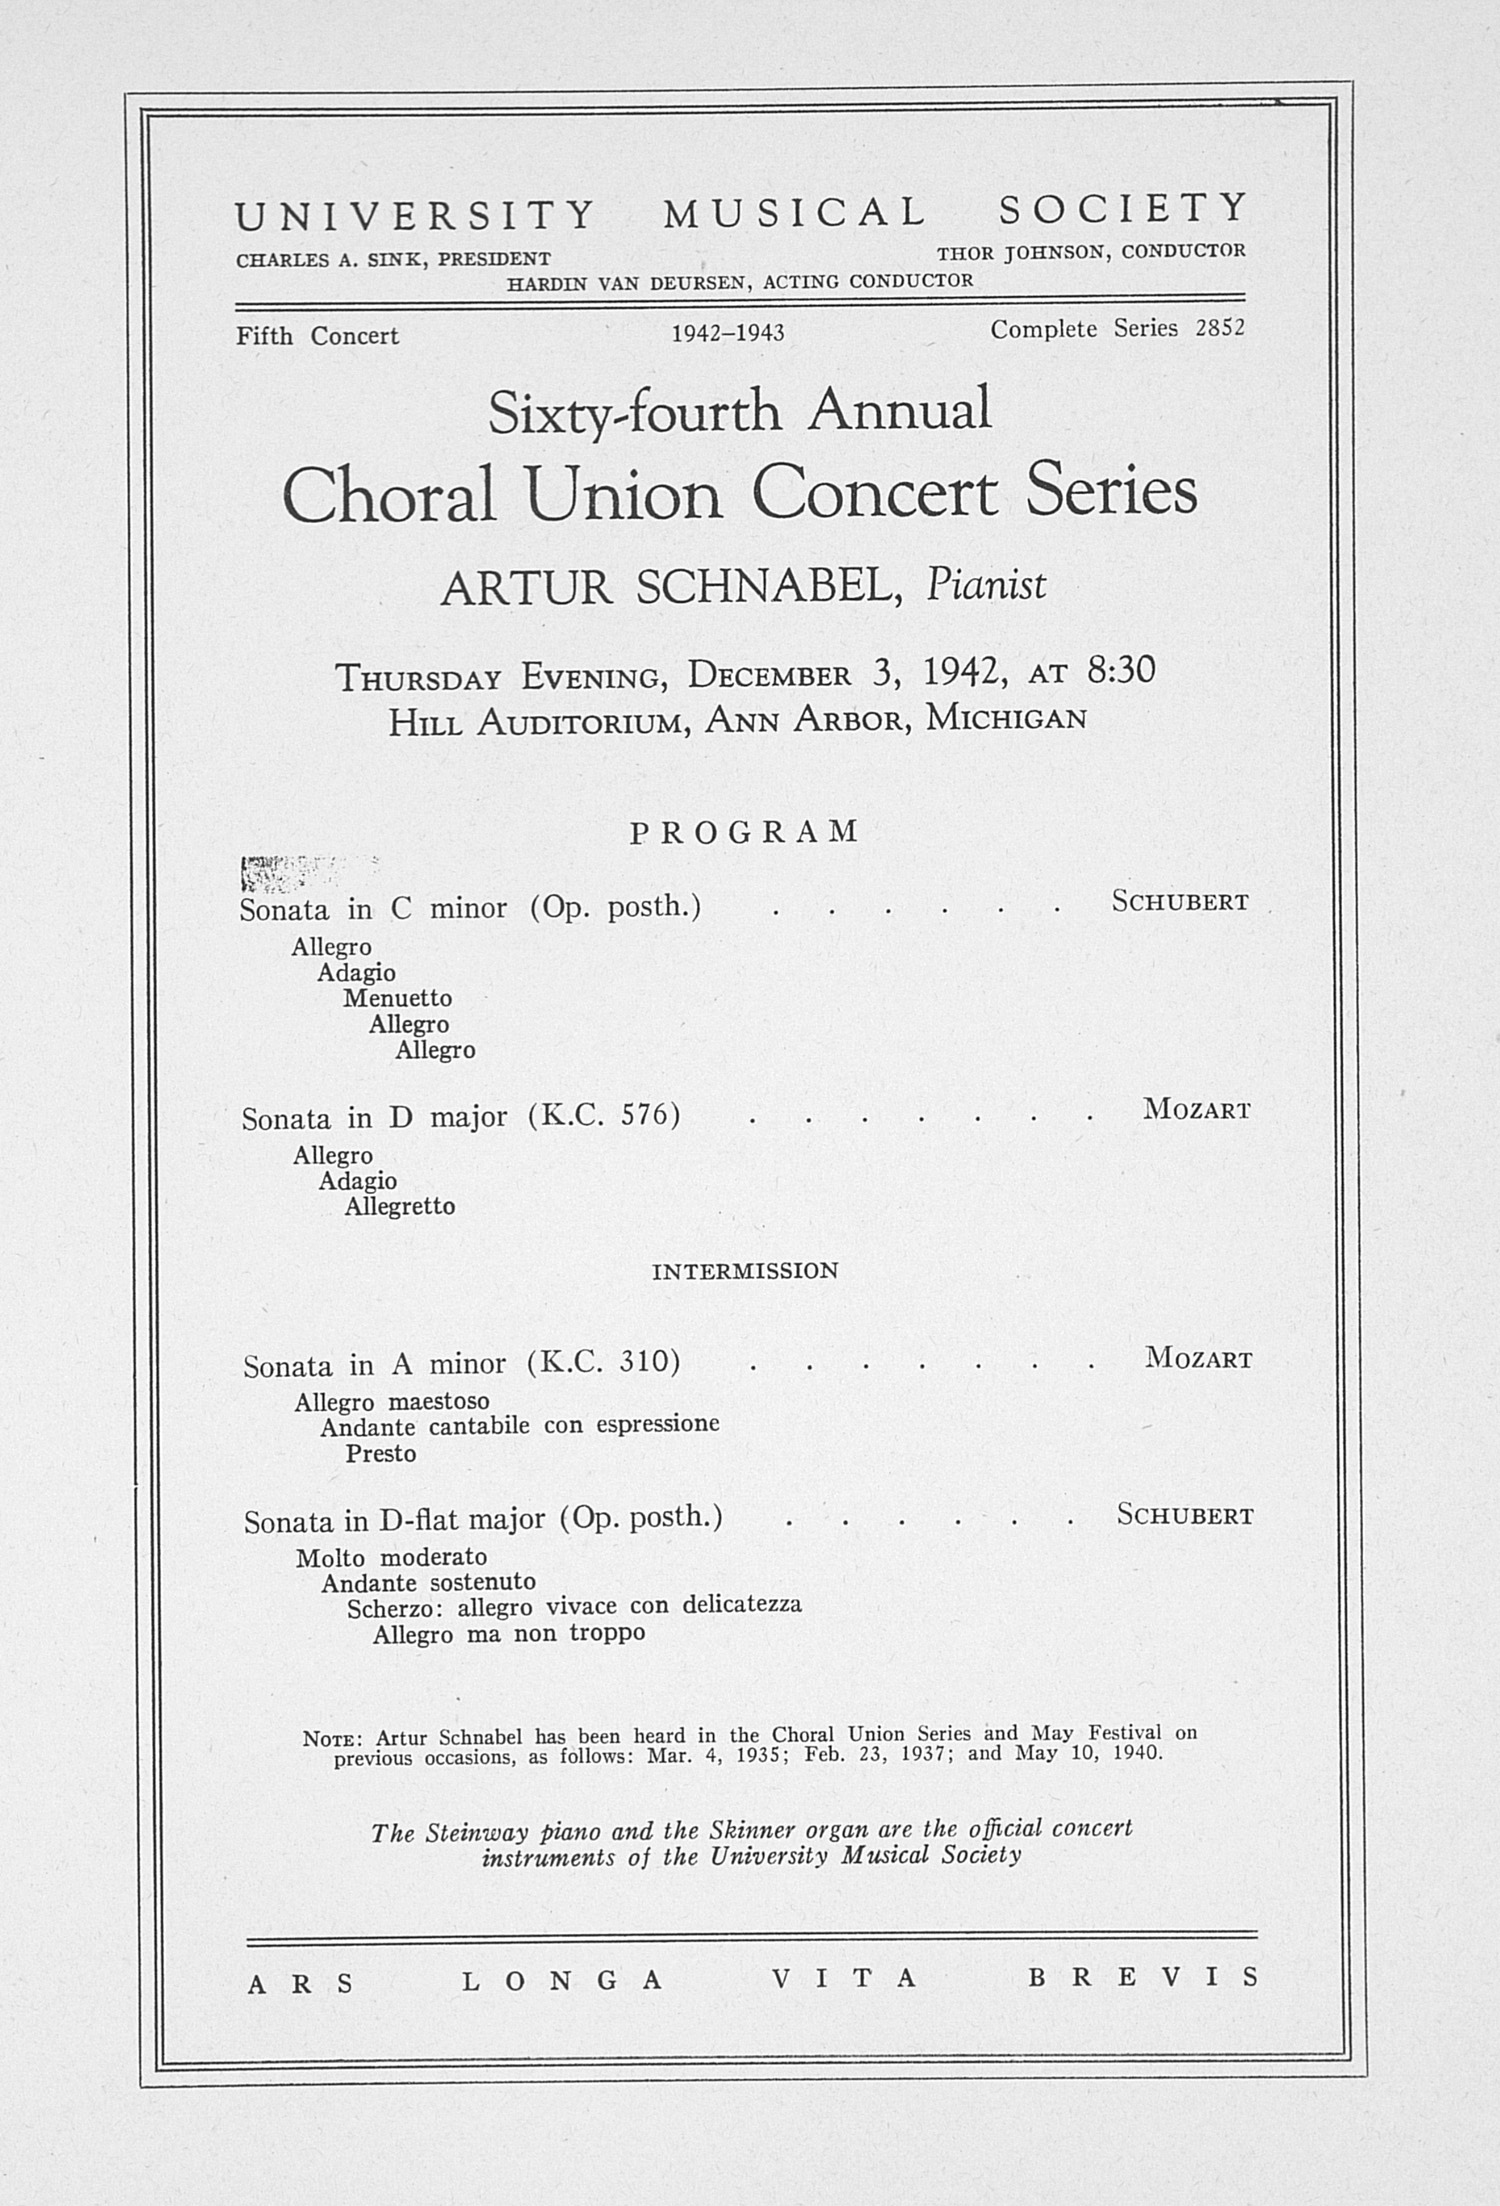 UMS Concert Program, December 3, 1942: Sixty-fourth Annual Choral Union Concert Series -- Artur Schnabel image